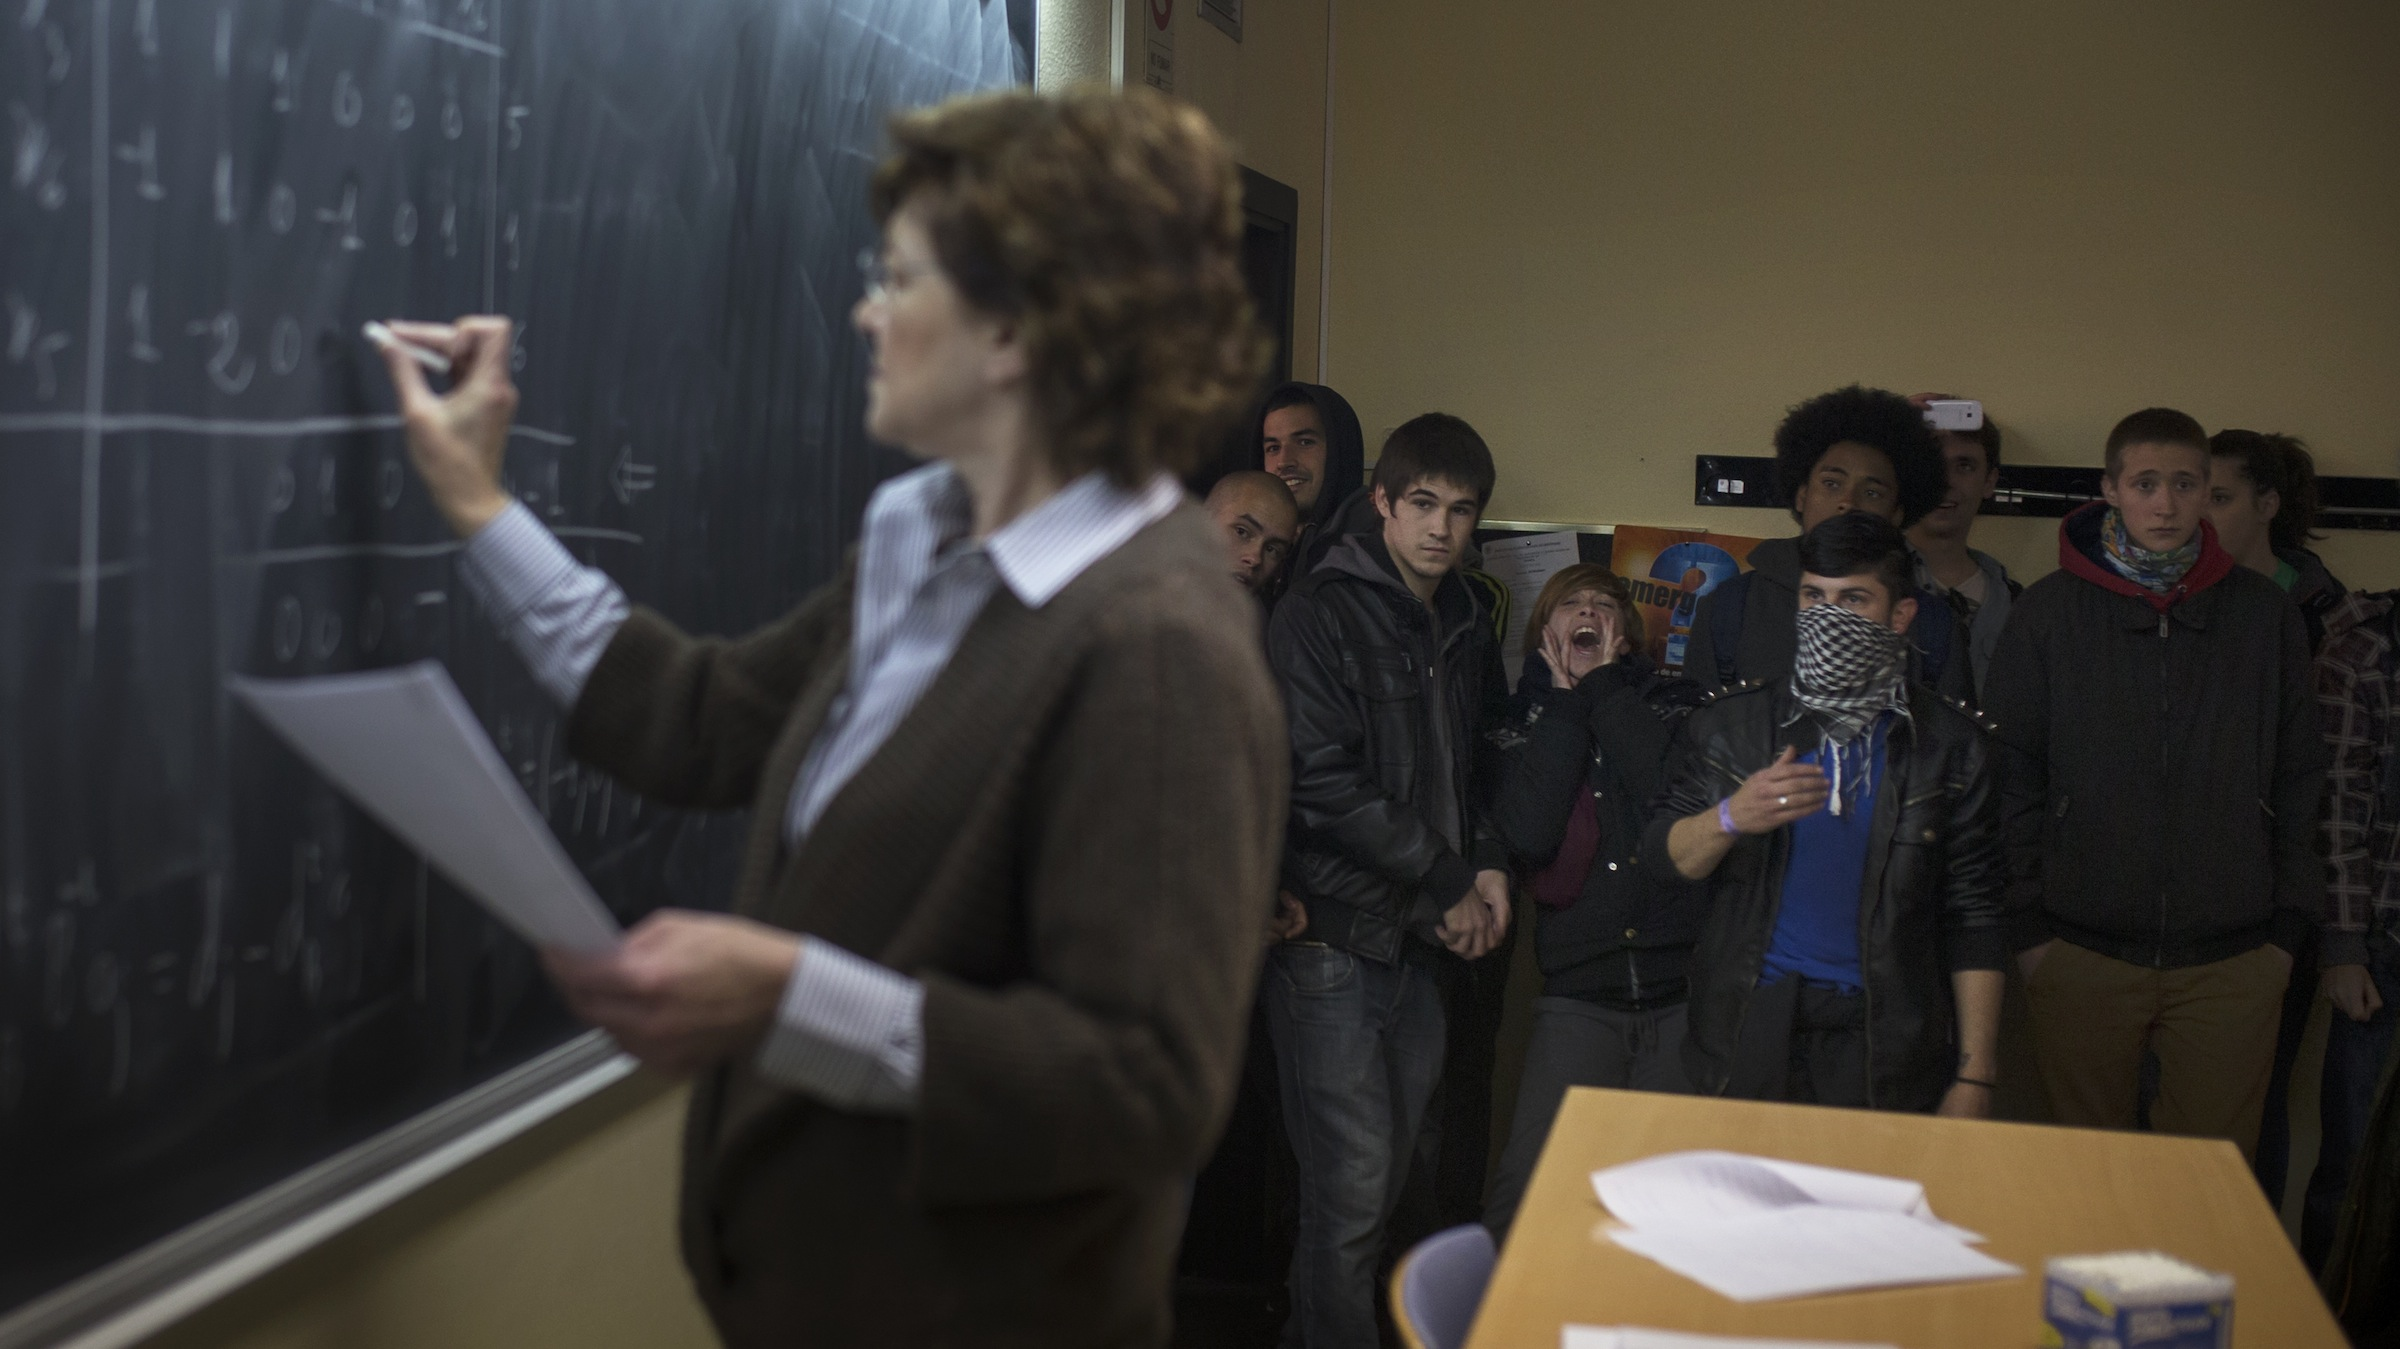 Protestors enter a classroom , as a teacher, left, gives a lecture during the second day of student strikes to protest against the government education reform and cutbacks in grants and staffing, at Complutense University in Madrid, Spain, Thursday, March 27, 2014. (AP Photo/Andres Kudacki)